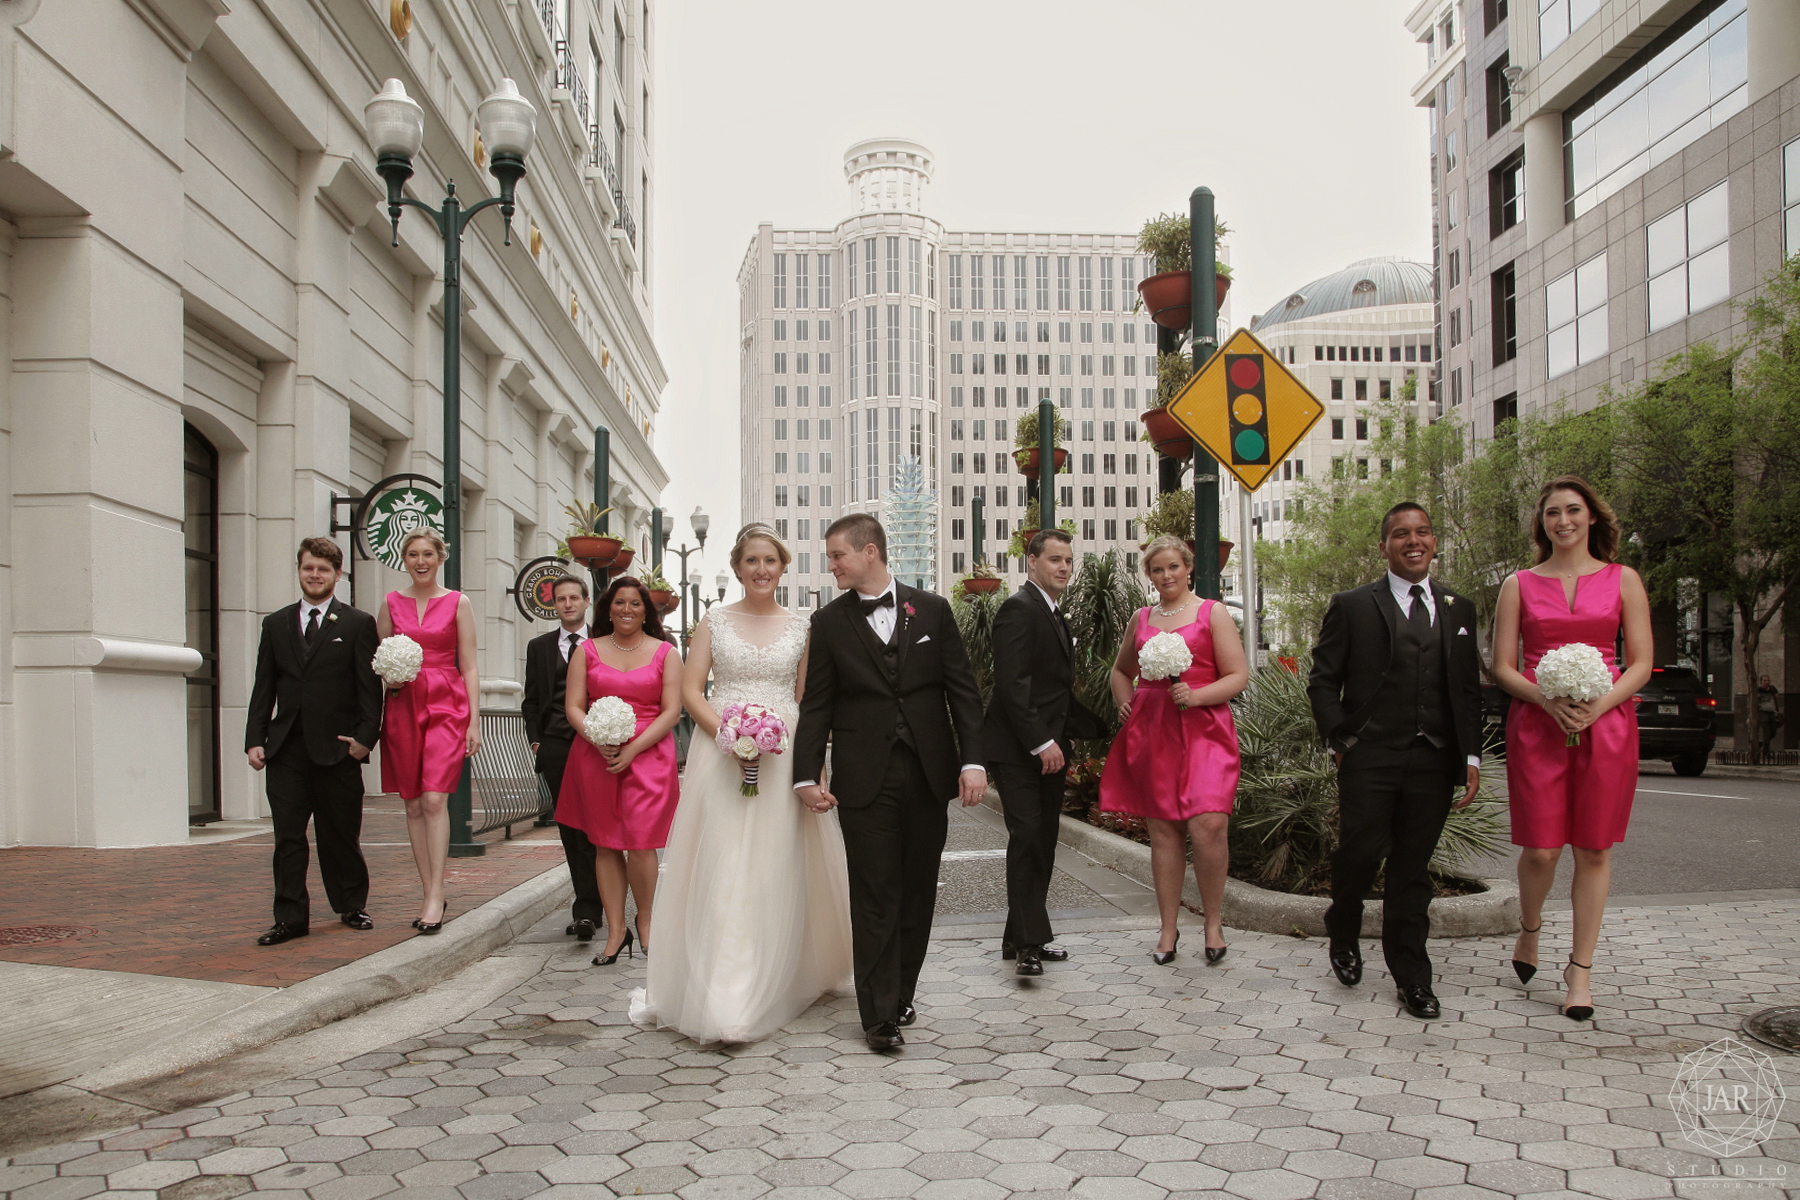 40-downtown-orlando-bridal-party-jarstudio-photography.JPG